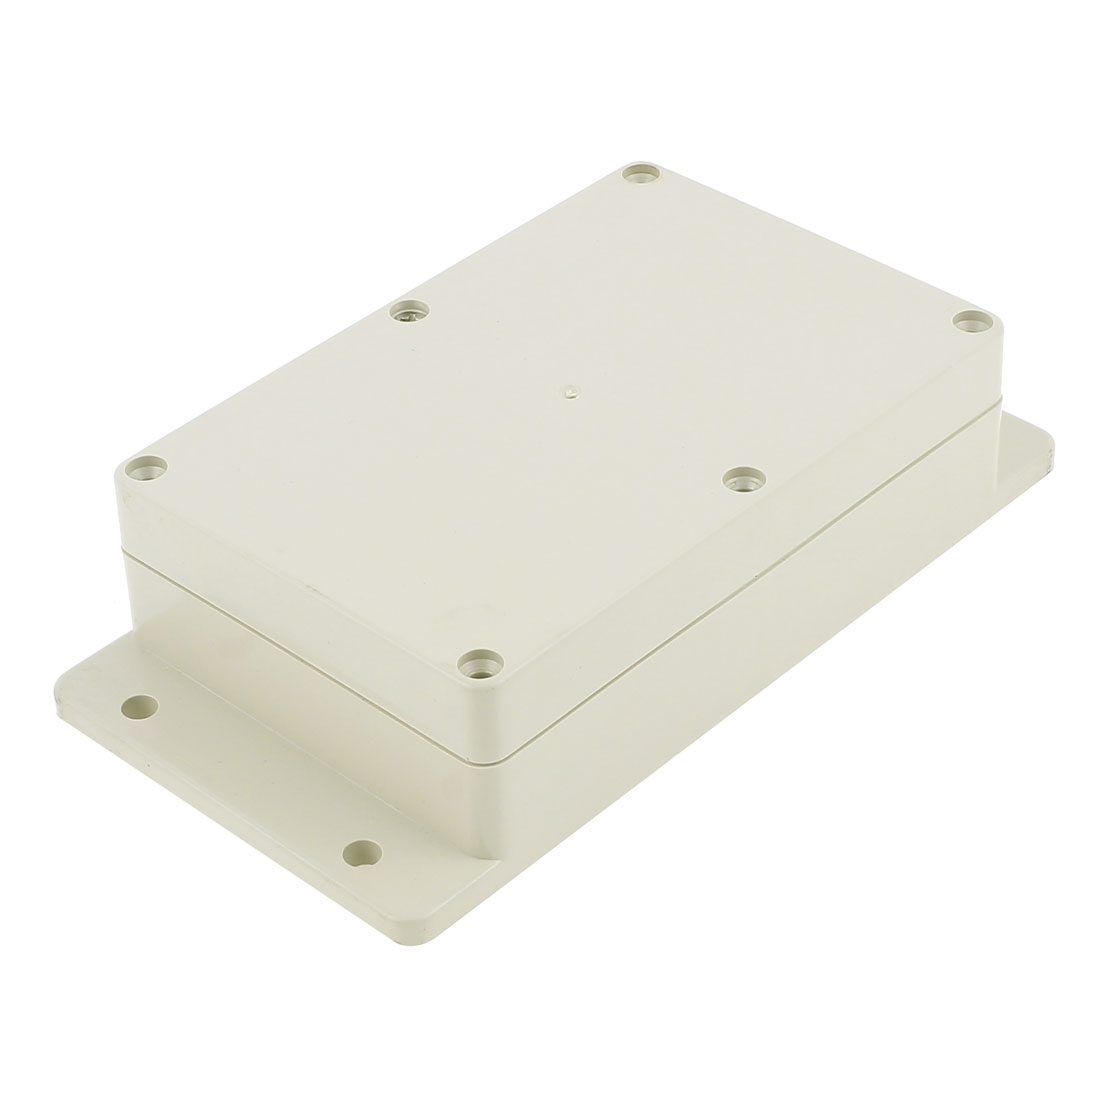 195 x 100 x 45mm Dustproof IP65 Junction Box Terminal Connecting Enclosure